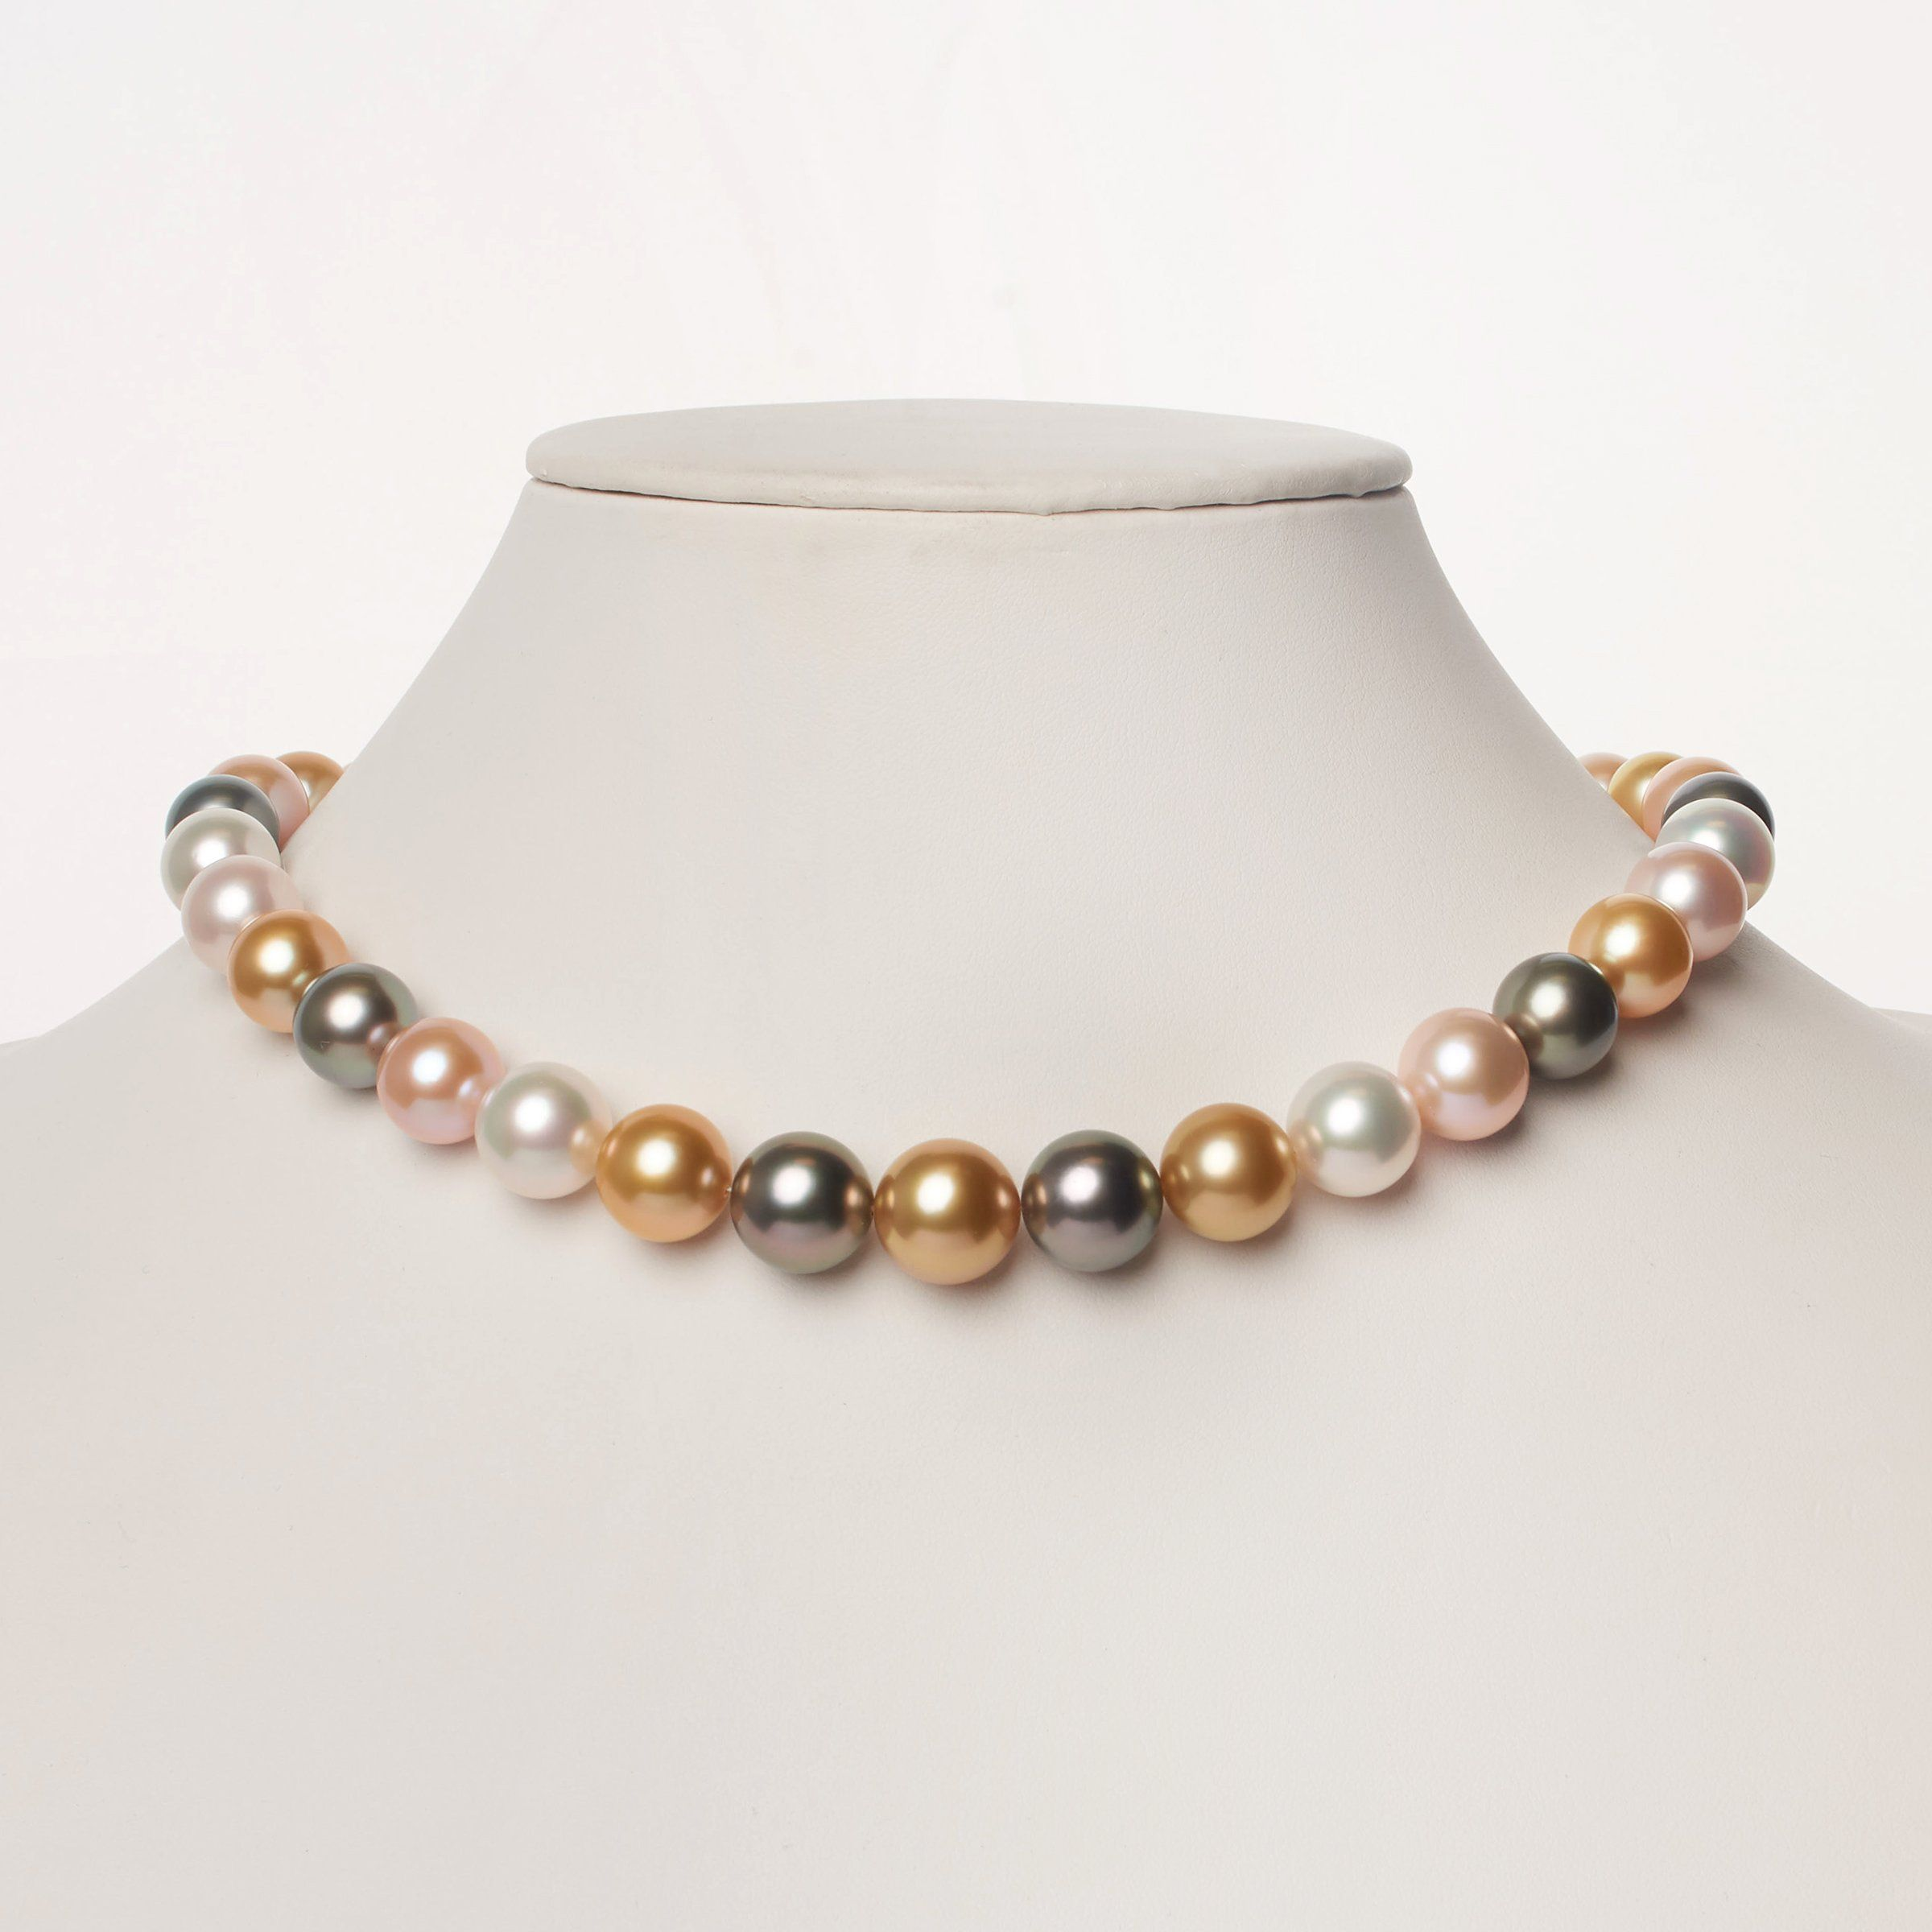 11.0-13.5 mm AAA Multicolored Round Pearl Necklace